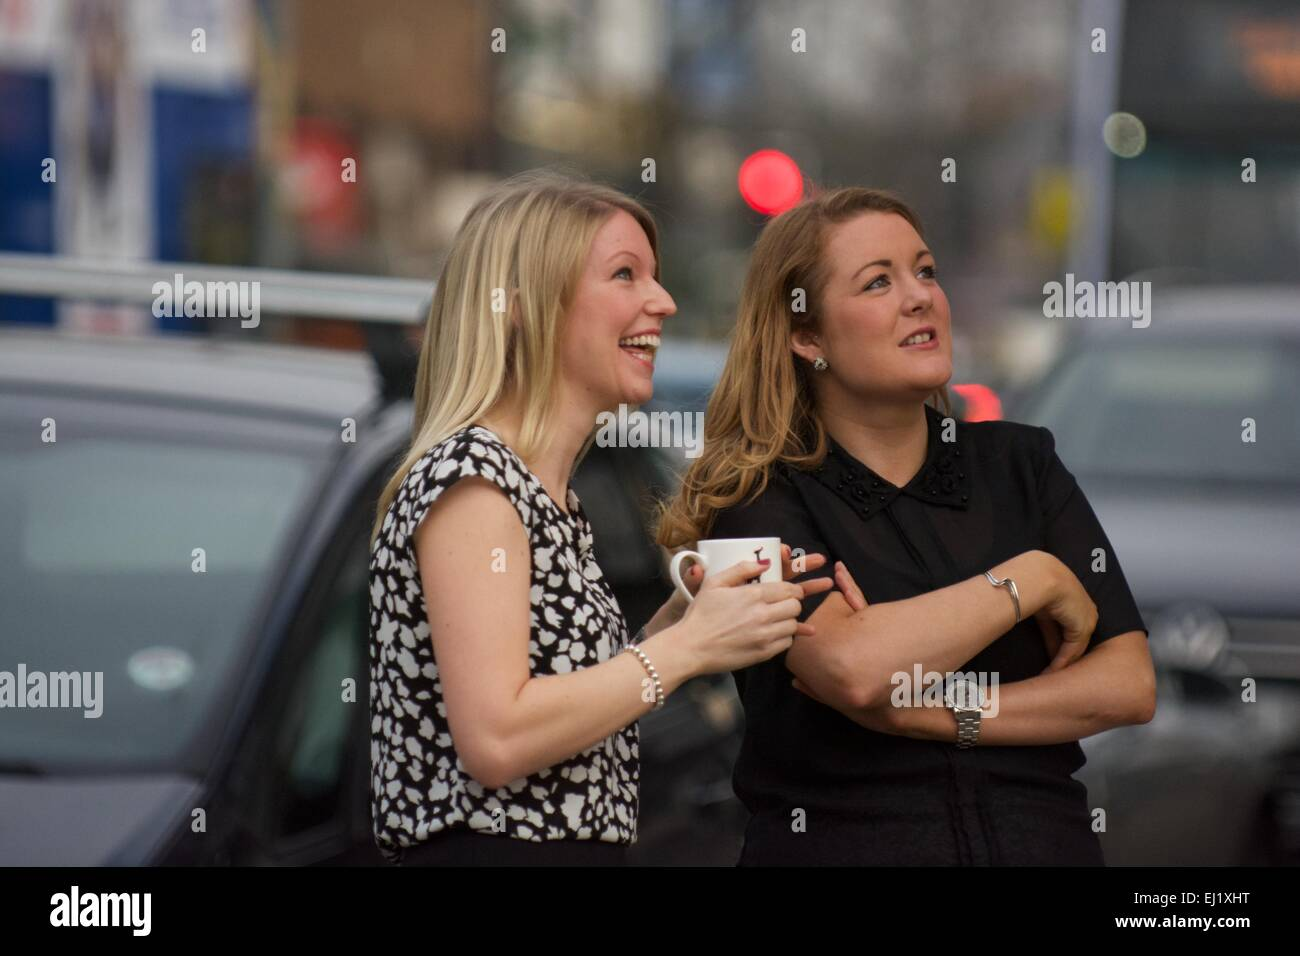 Manchester UK  20th March  2015 Two young ladies watch the solar eclipse without eye protection in Didsbury, South - Stock Image